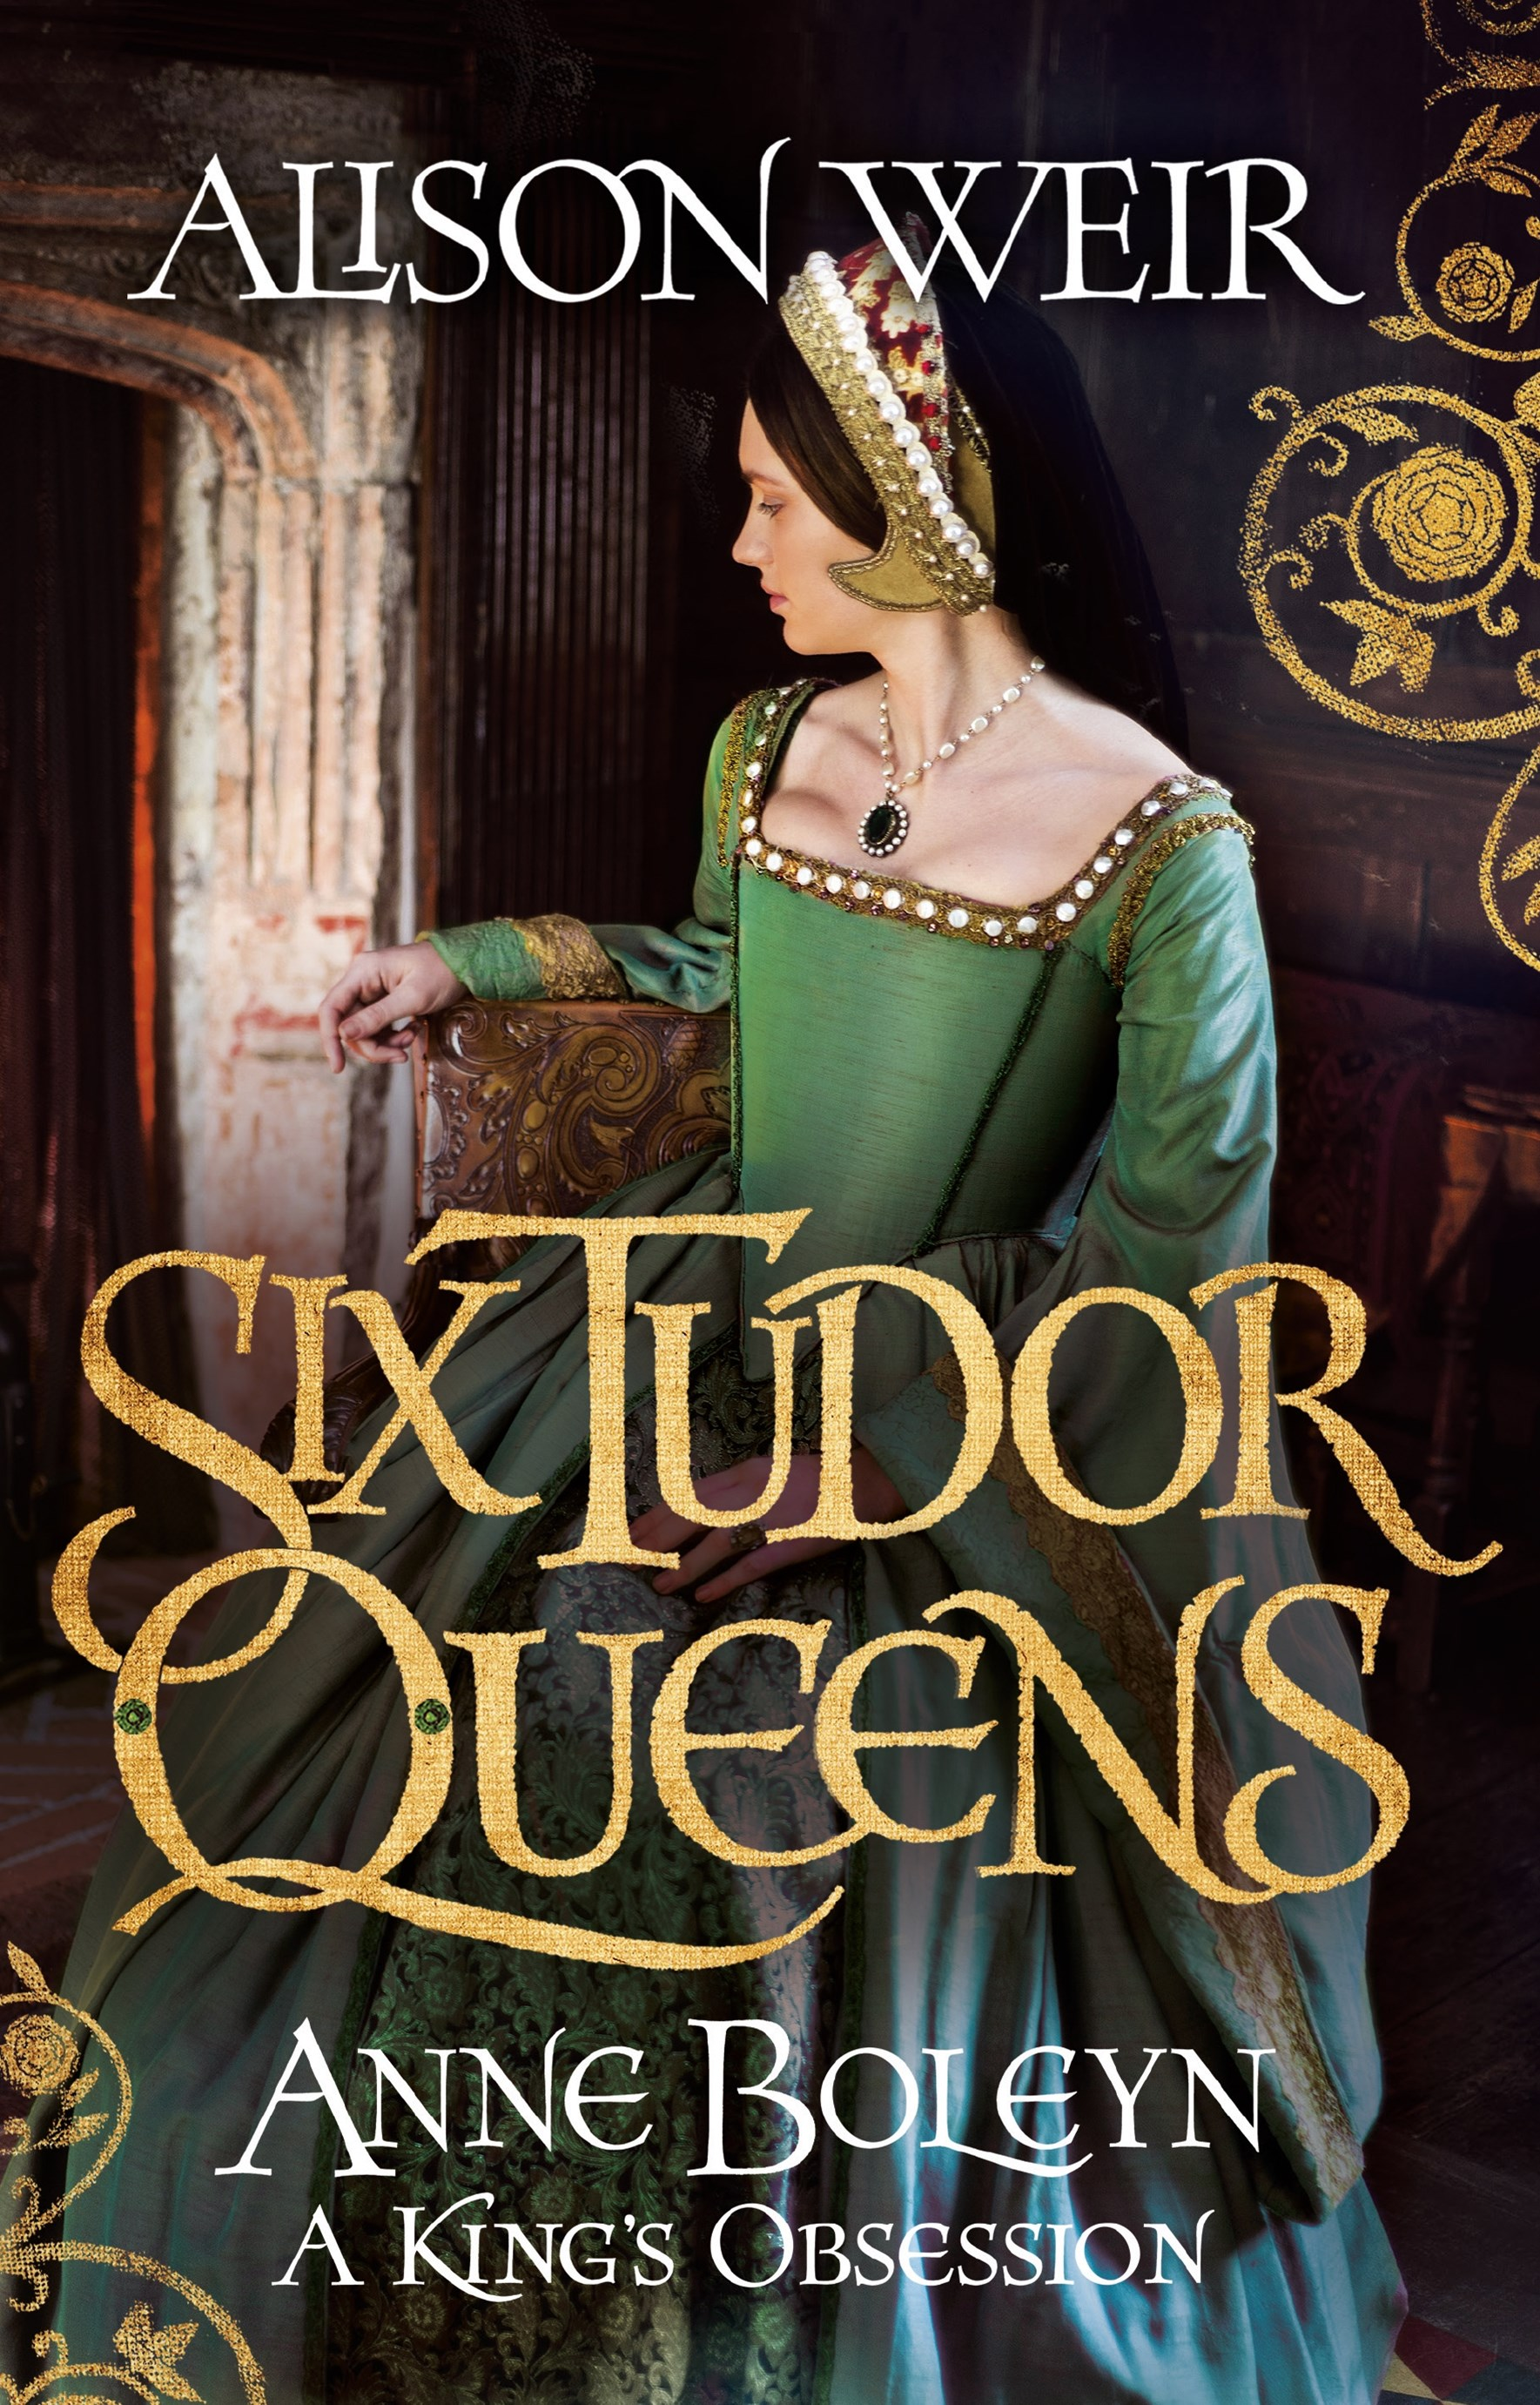 Anne Boleyn: A King's Obsession (Six Tudor Queens, Book 2)